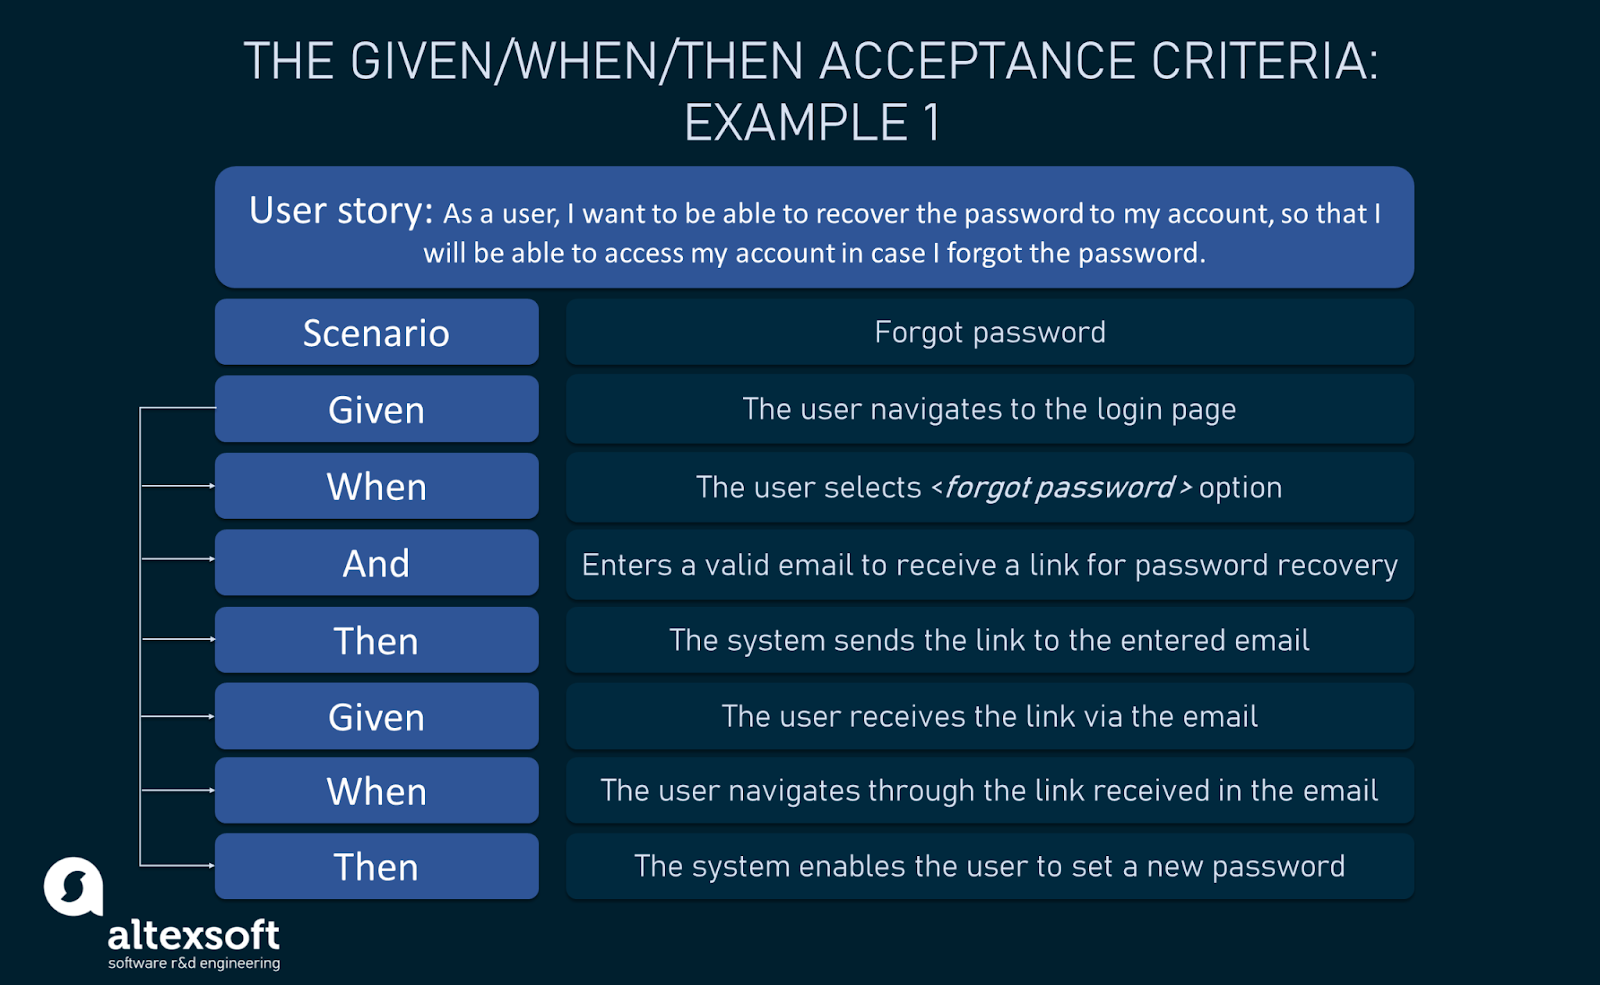 Recovering the password acceptance criteria example